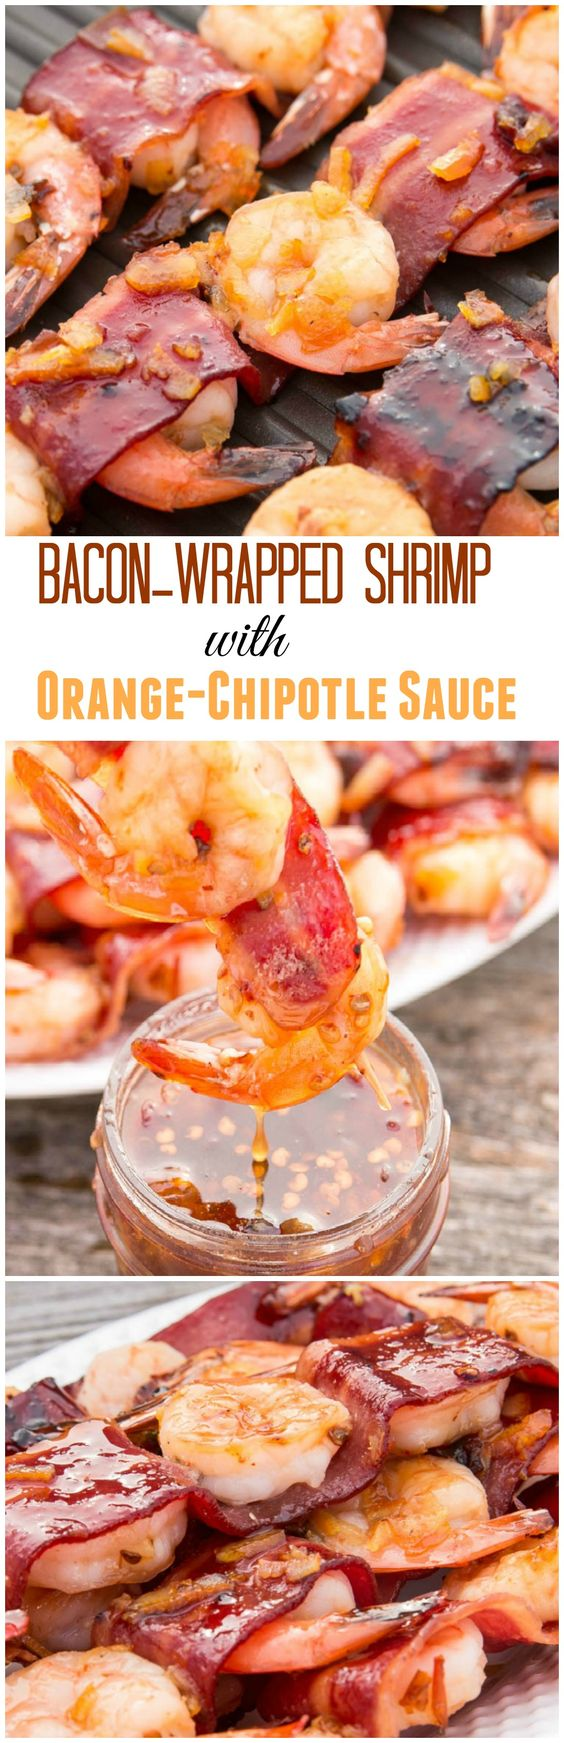 Shrimp kabobs, Bacon wrapped shrimp and Chipotle sauce on Pinterest